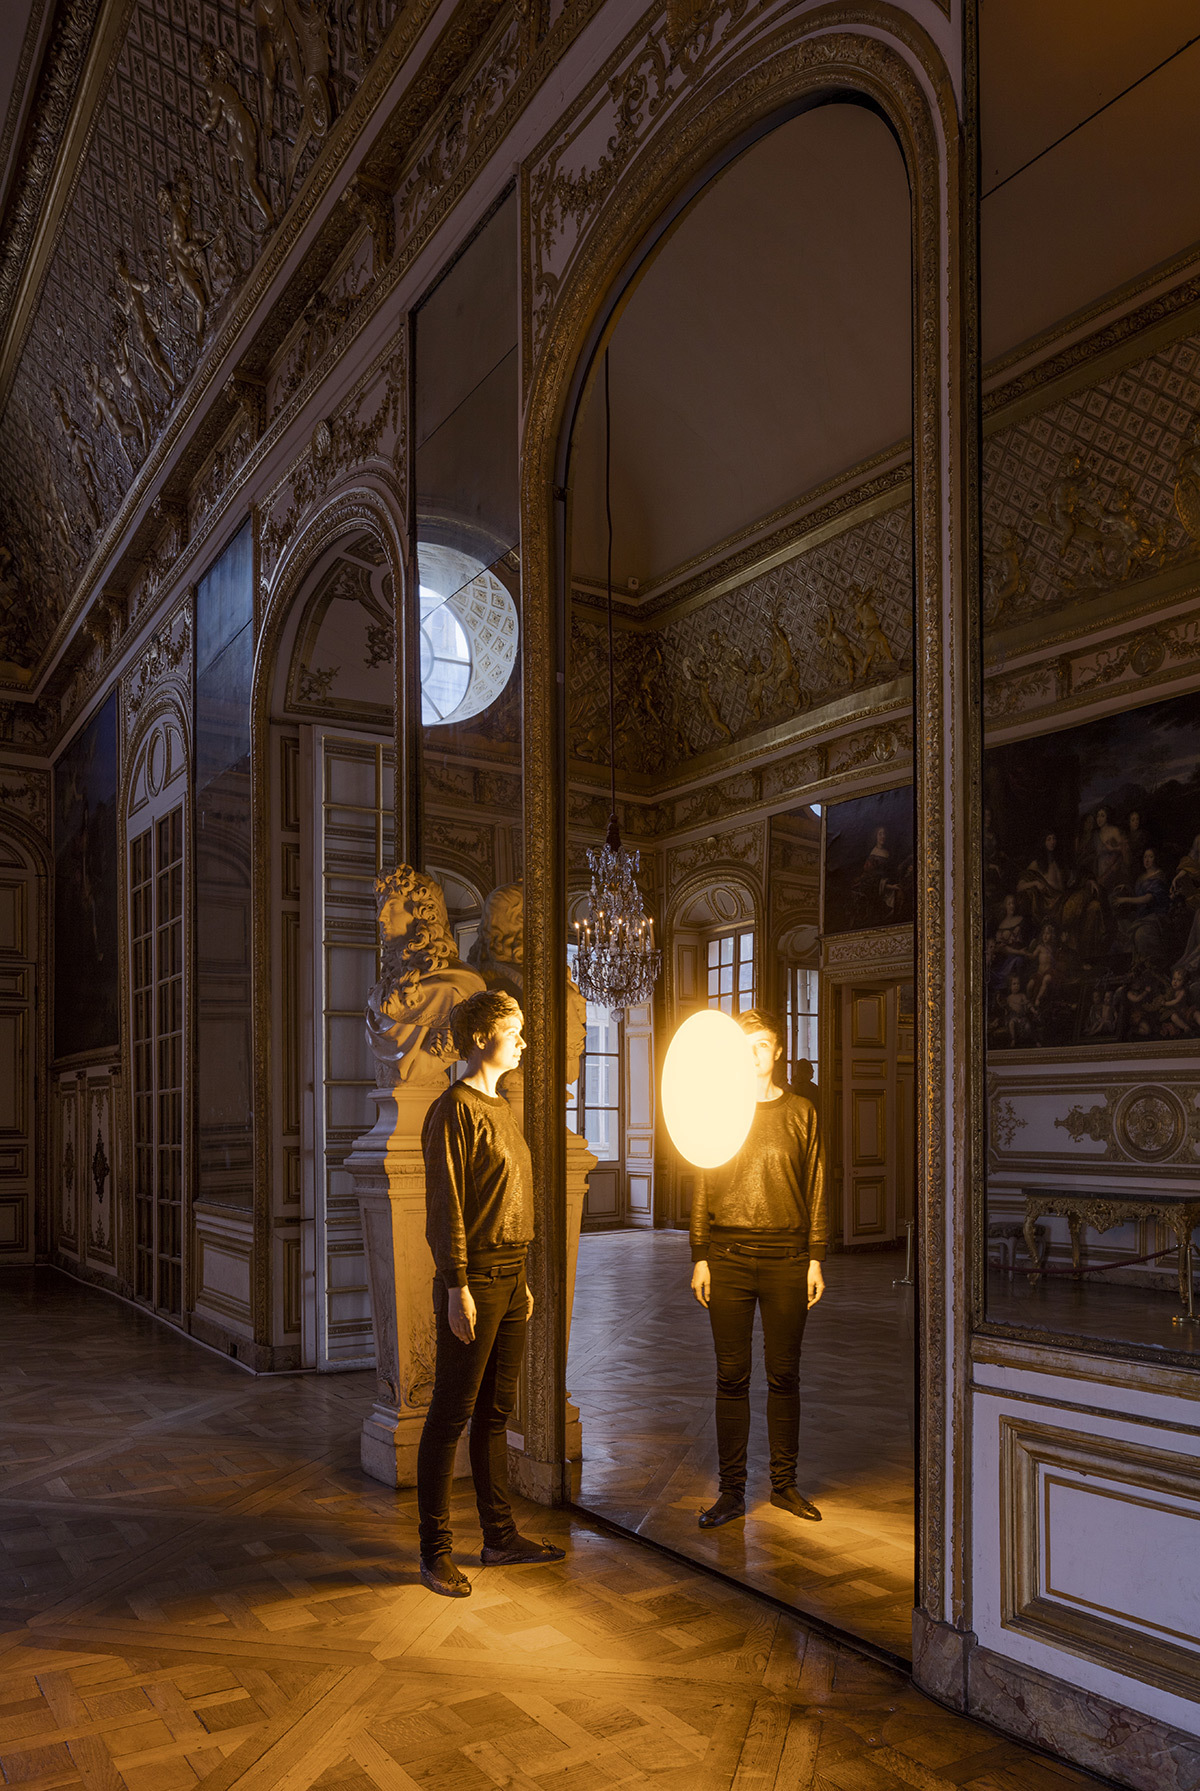 Olafur Eliasson, Deep mirror yellow, 2016 - Château de Versailles, France - Photo : Anders Sune Berg